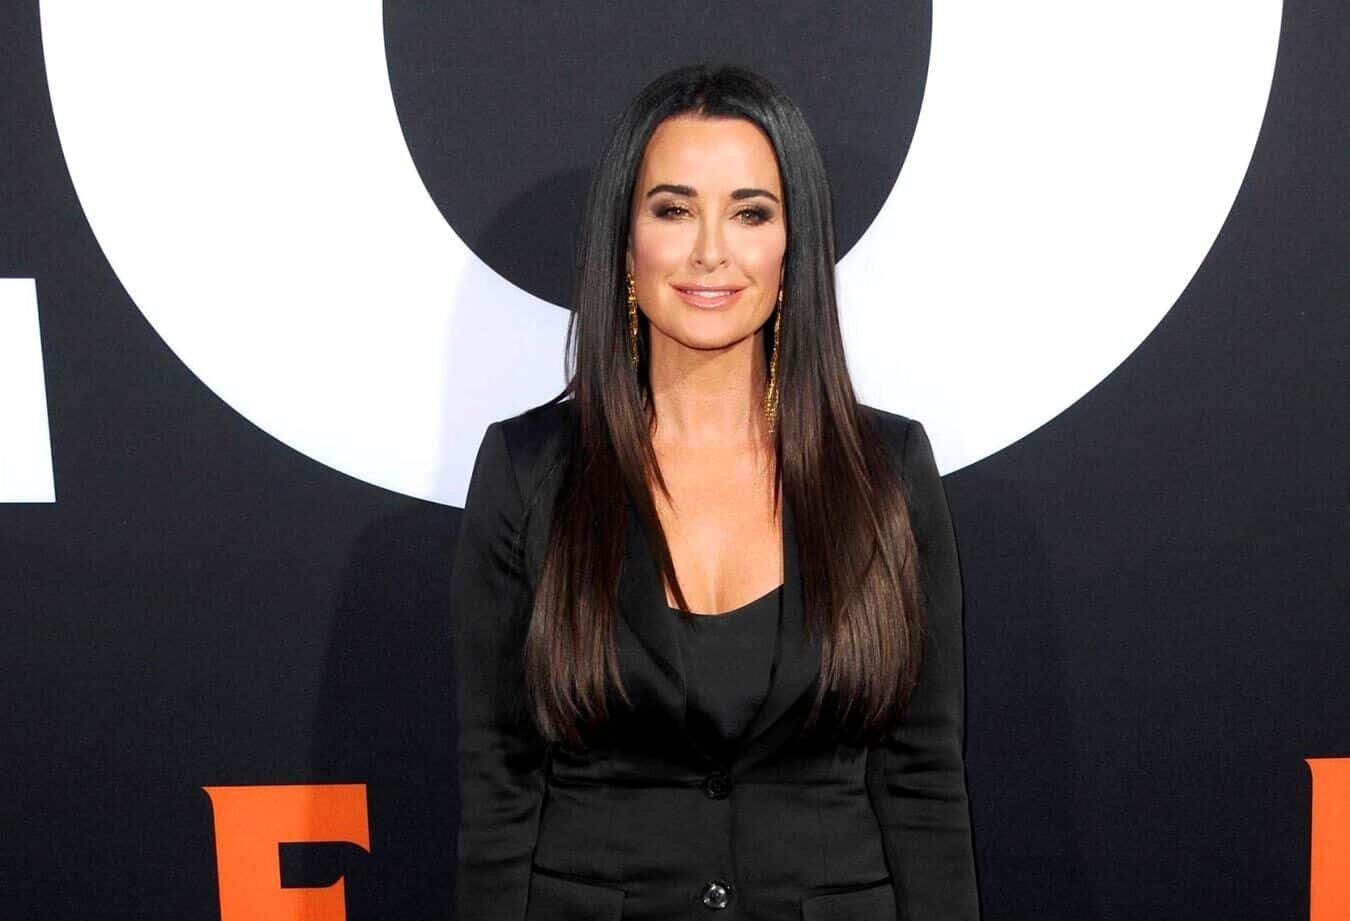 'RHOBH' Kyle Richards Offers a Health Update After Falling Ill With COVID-19, Plus She Shares Photo of Her Family's Christmas Card